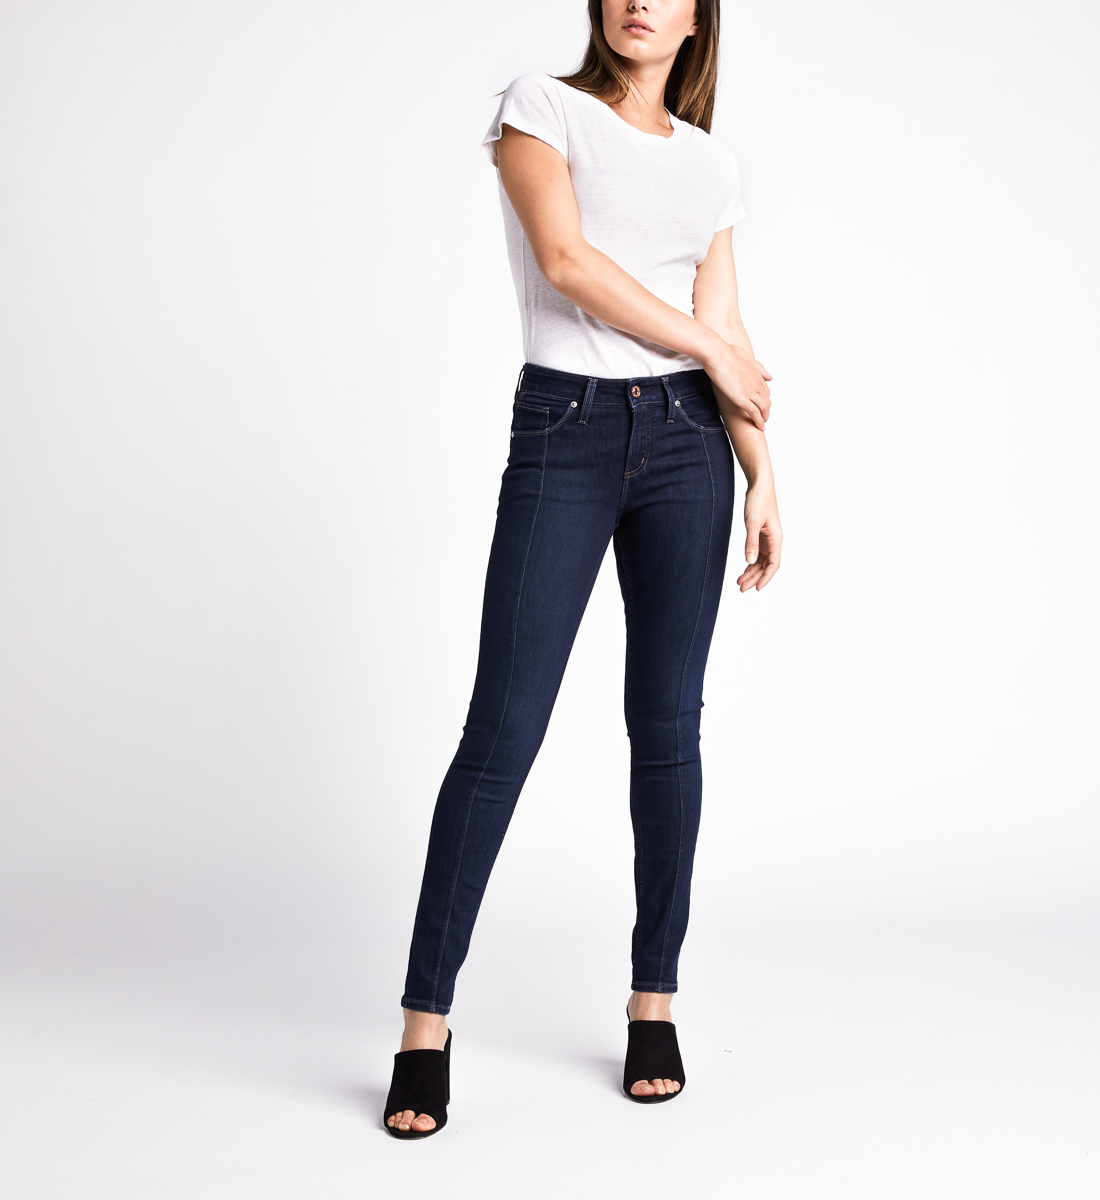 Silver Jeans Avery High Rise Skinny Leg Jeans